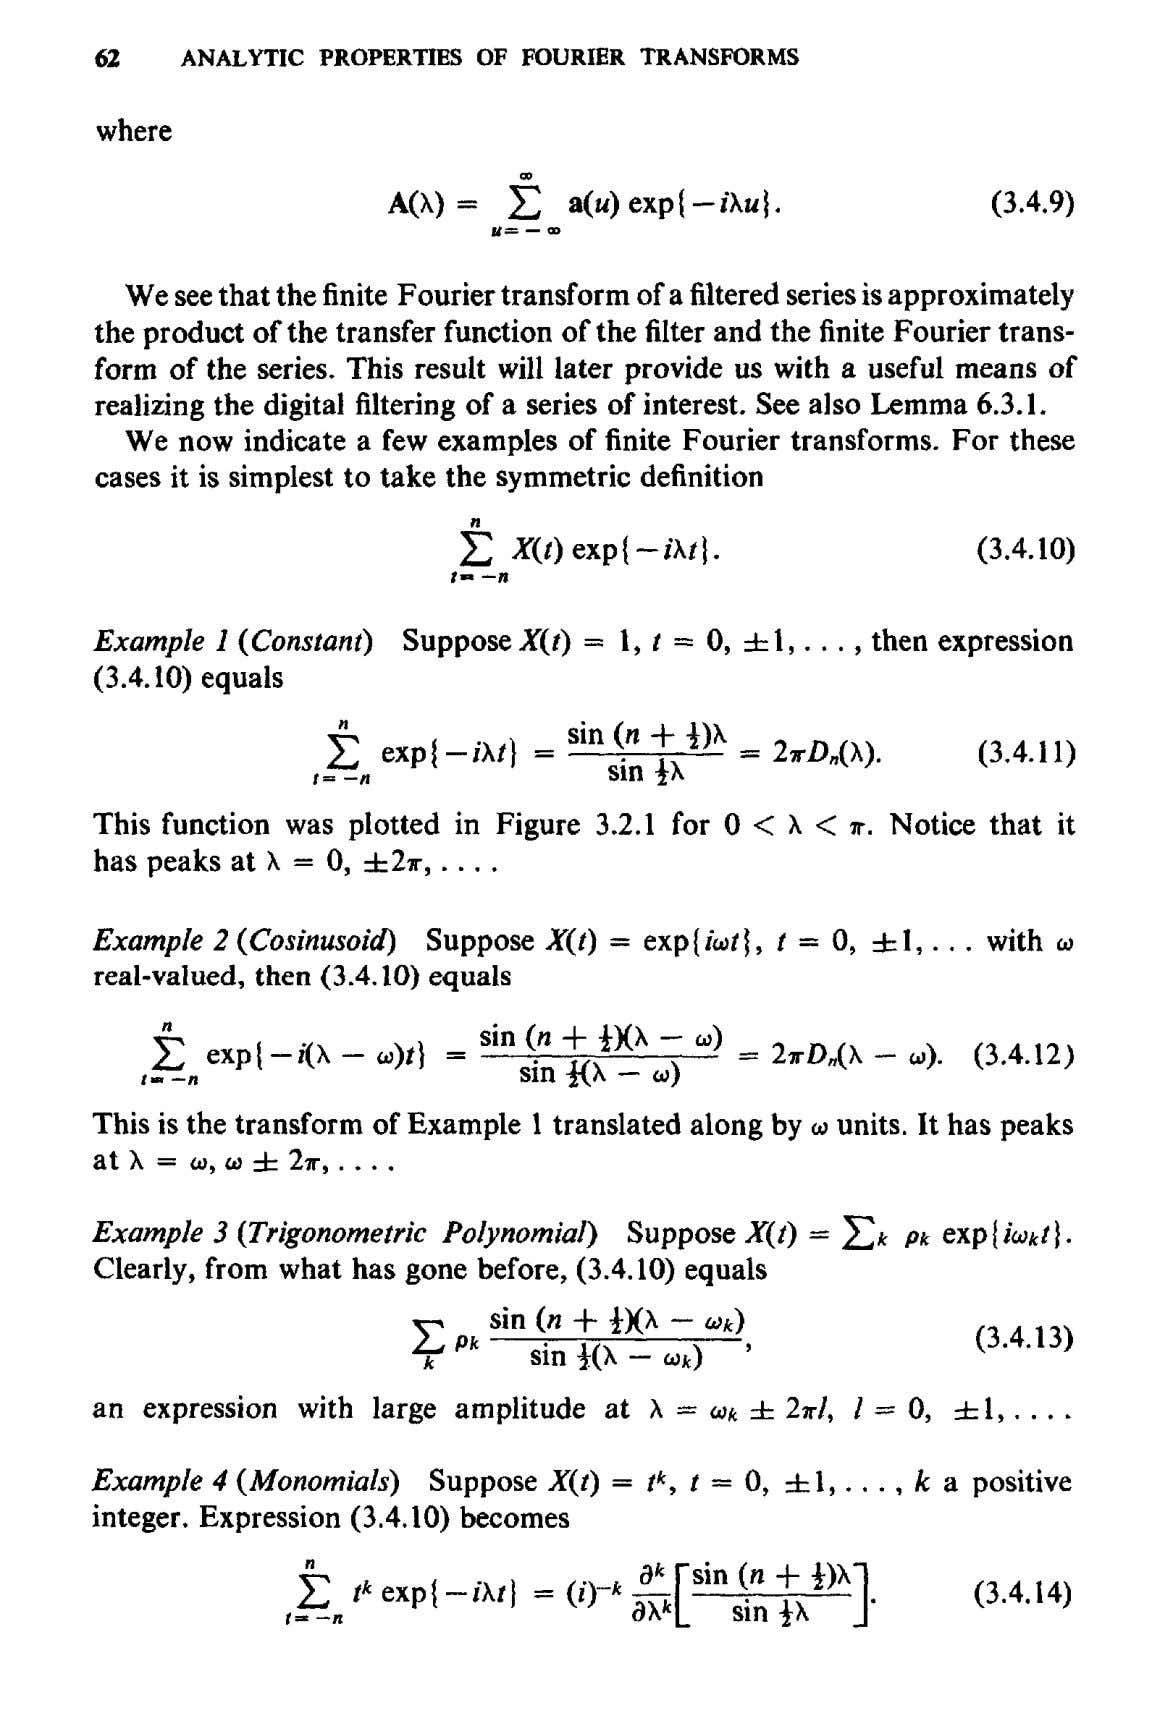 62 ANALYTIC PROPERTIES OF FOURIER TRANSFORMS where We see that the finite Fourier transform of